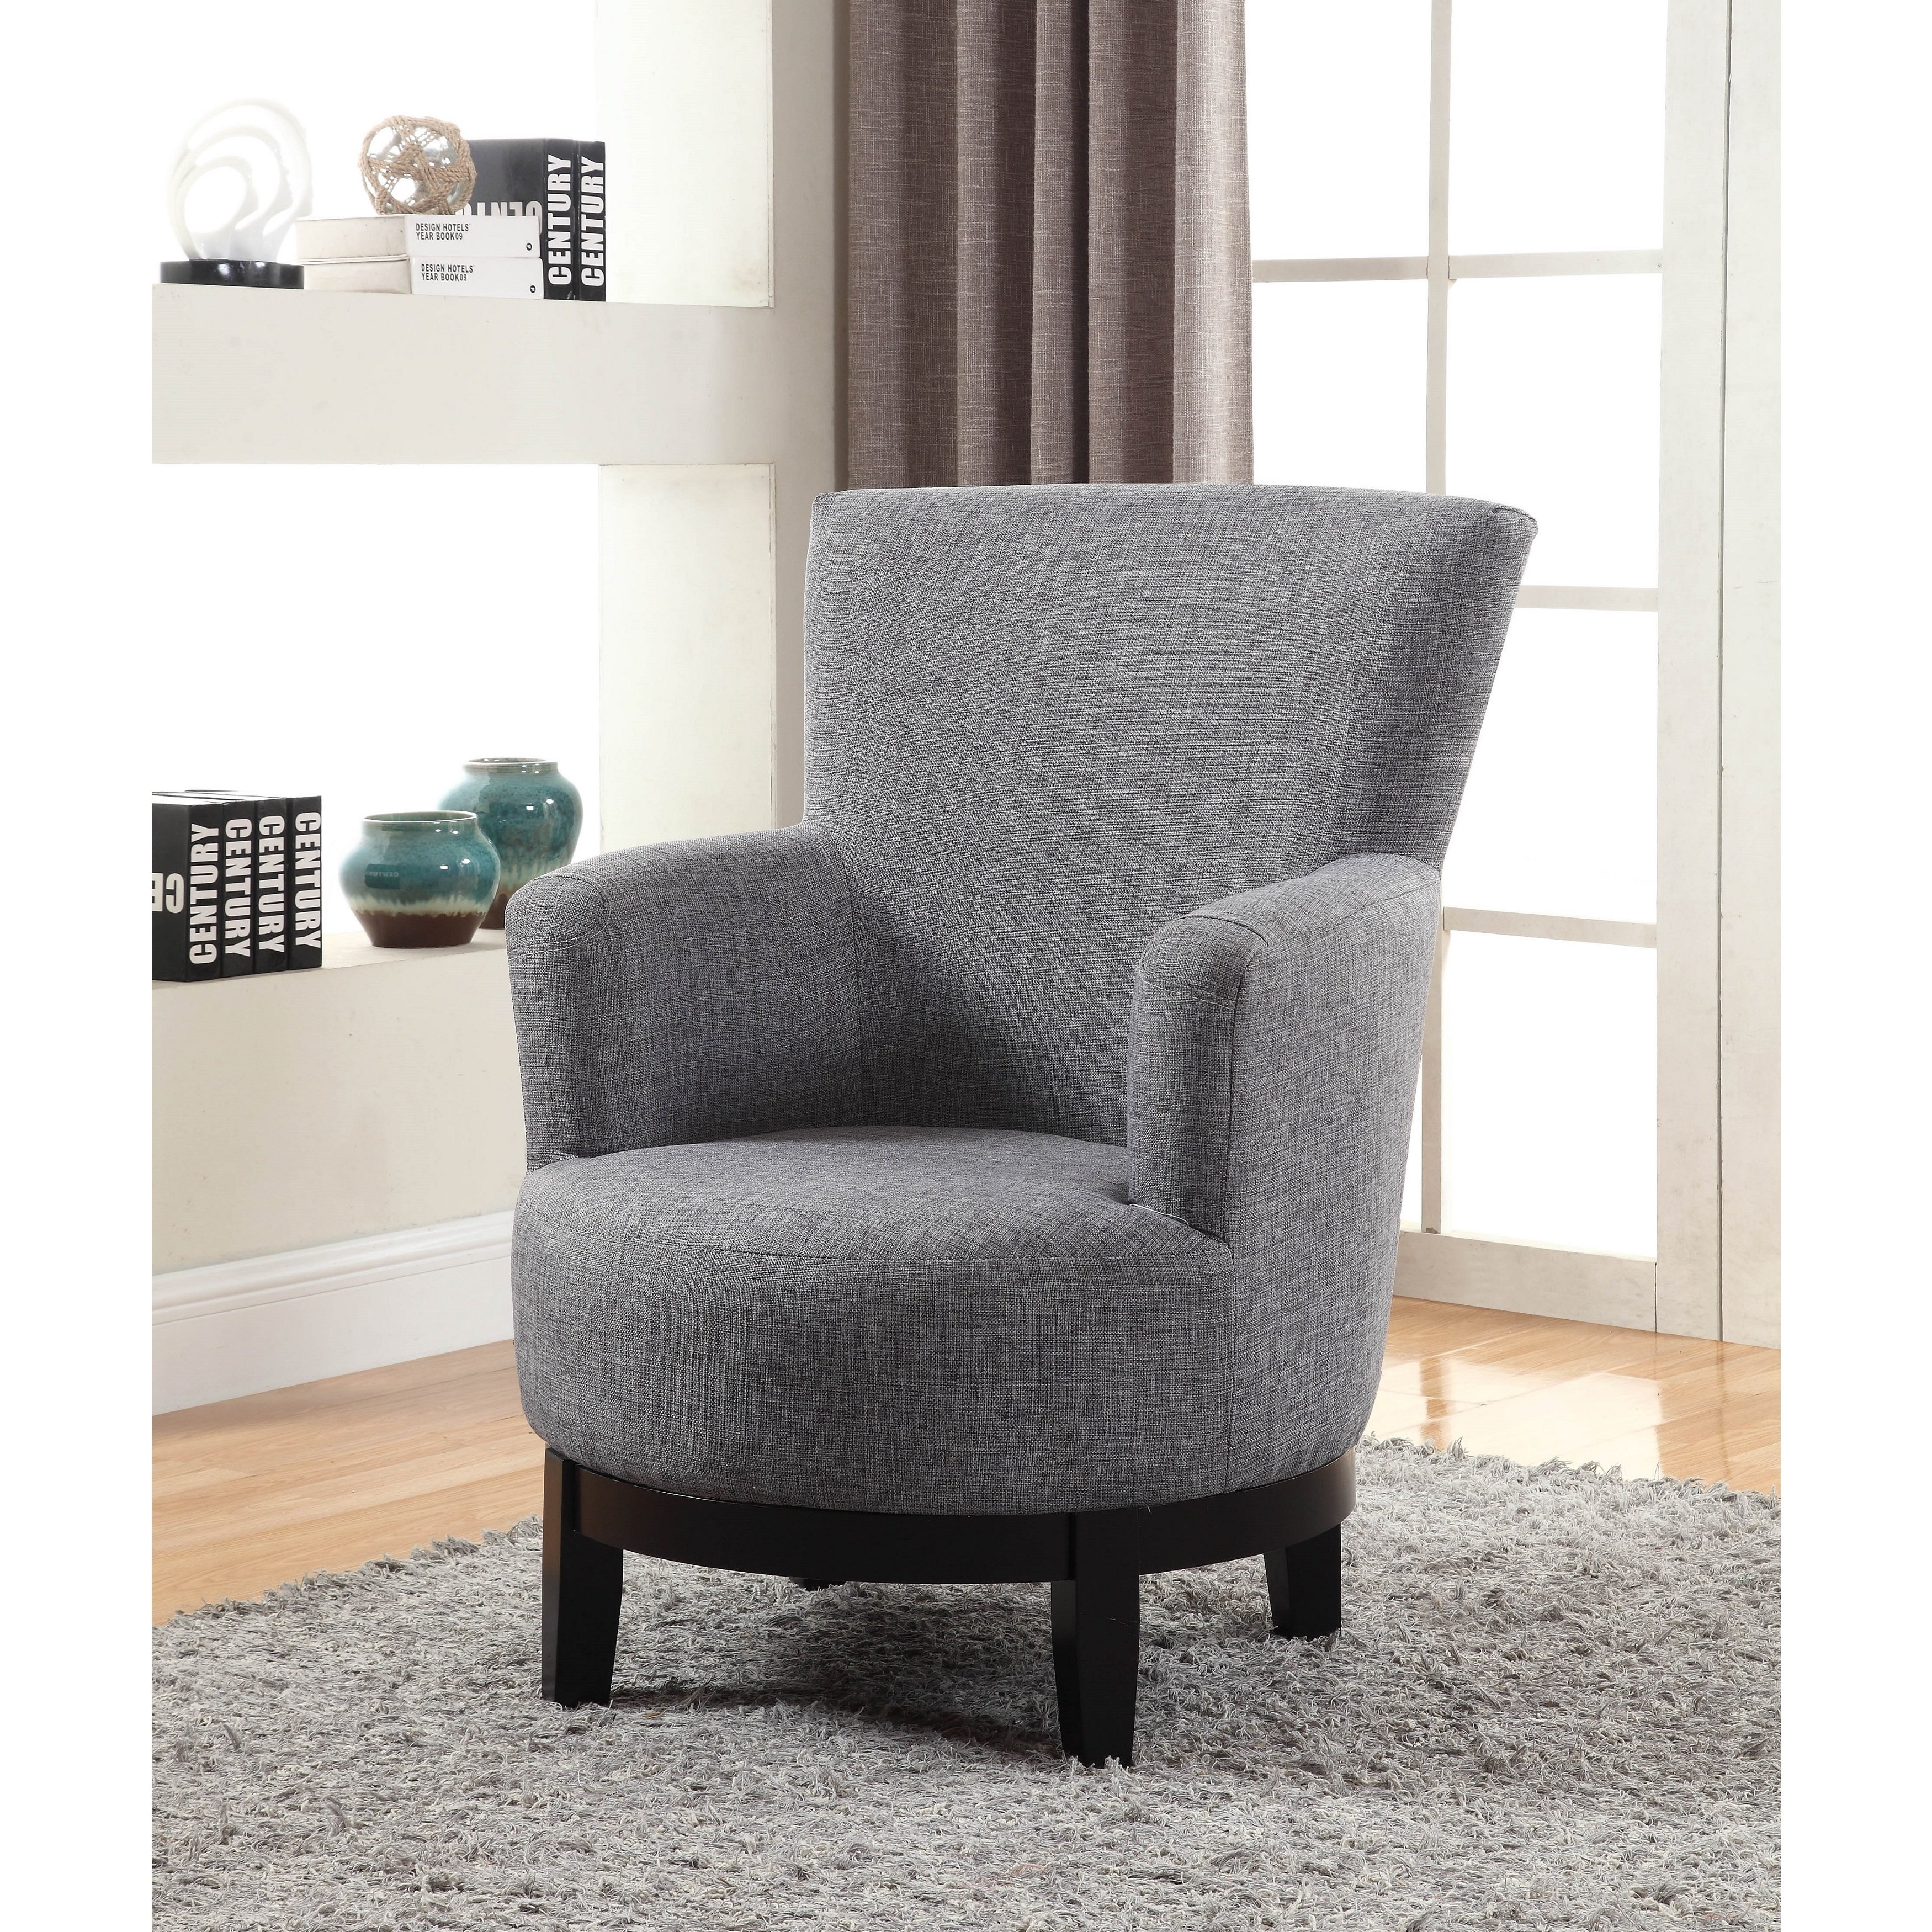 Shop Nathaniel Home Dominic Grey Swivel Accent Chair – Free Shipping Inside Umber Grey Swivel Accent Chairs (View 4 of 25)